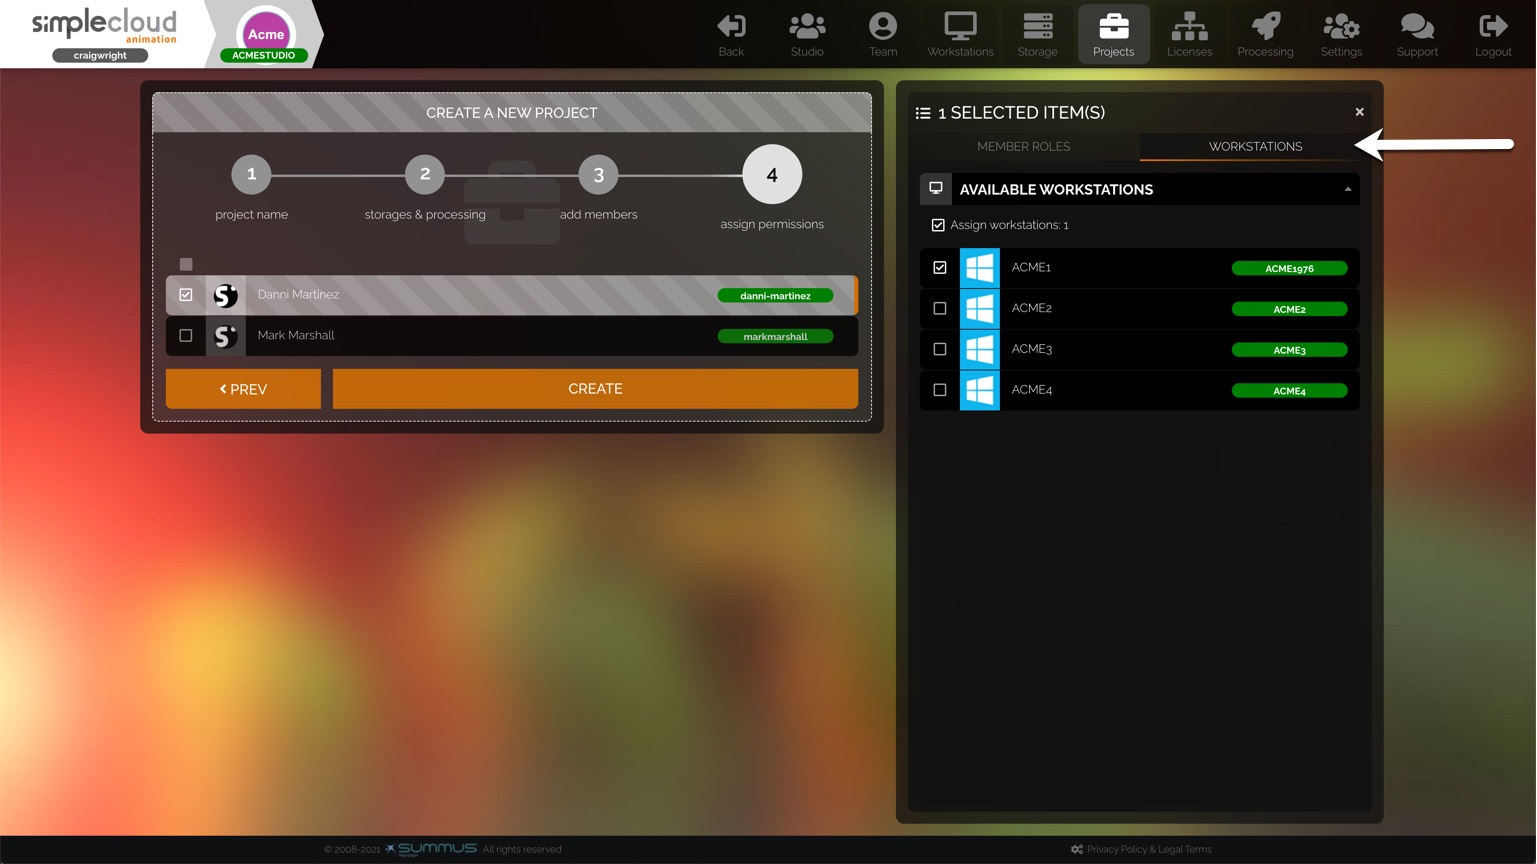 Workstations tab on stage 4 of the project creation settings.